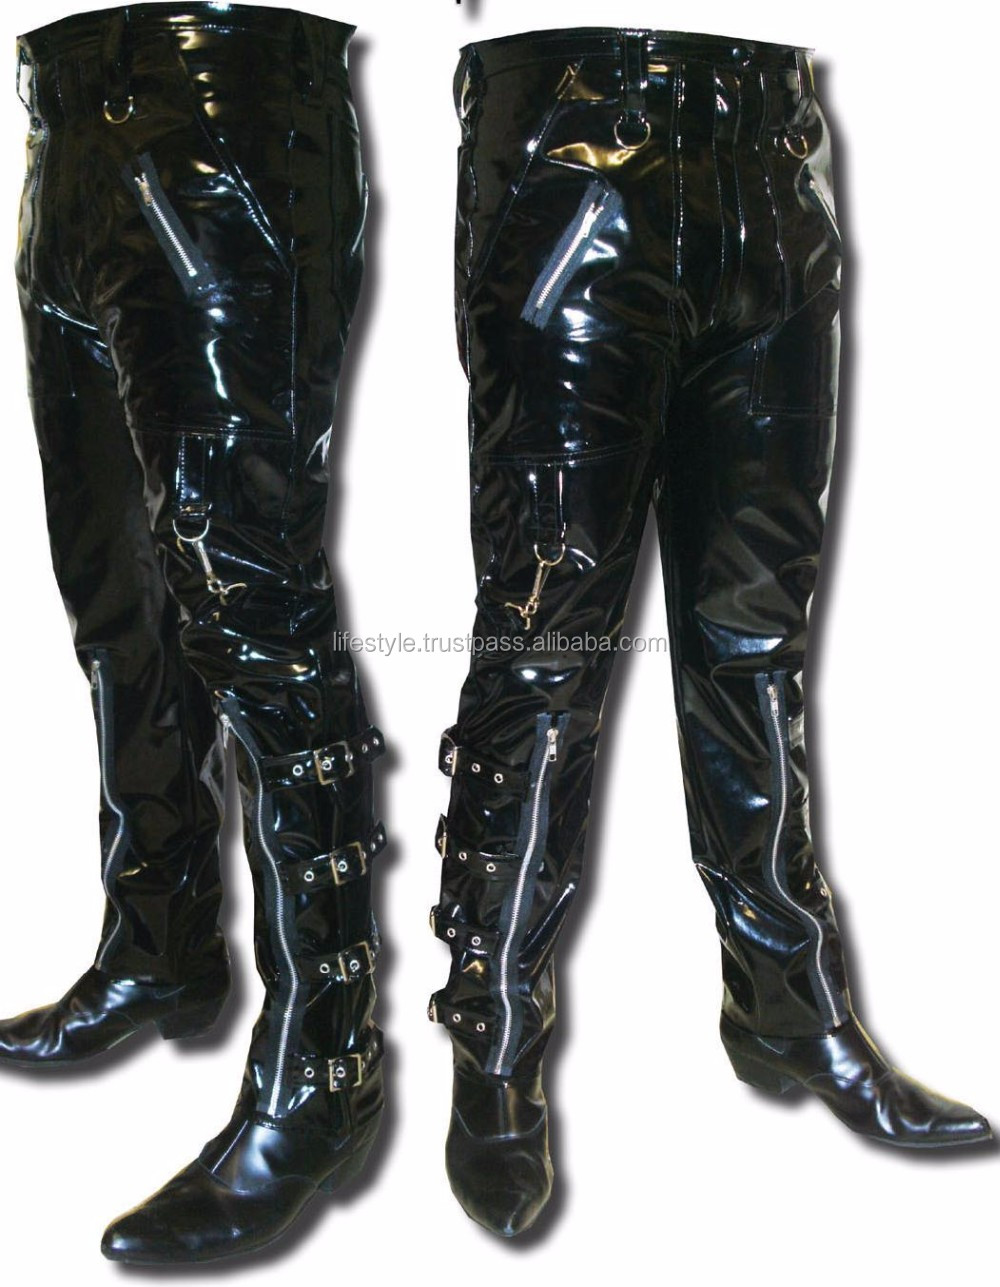 Gay fetish boots